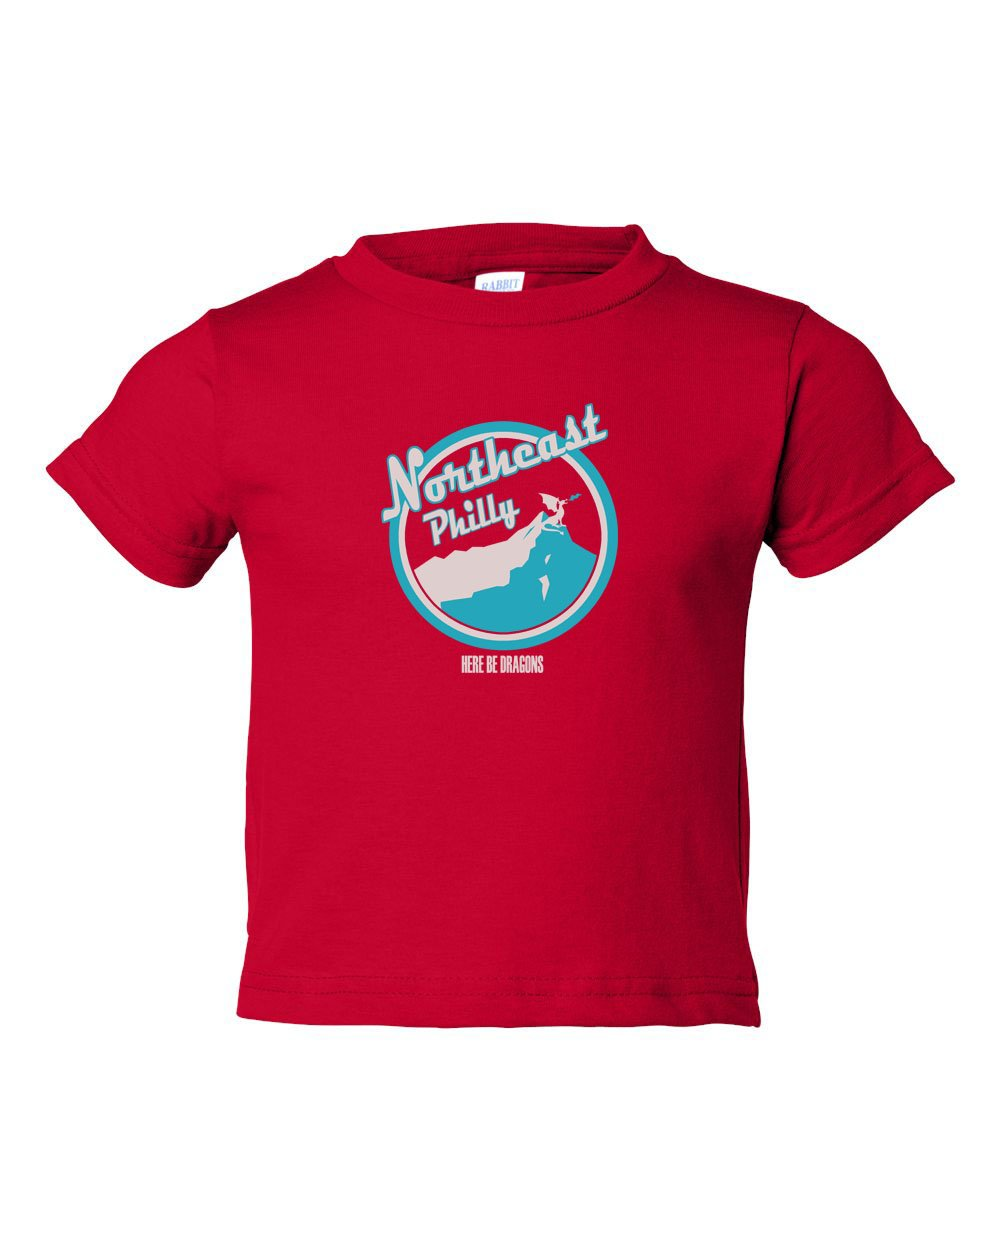 Northeast Philly TODDLER T-Shirt